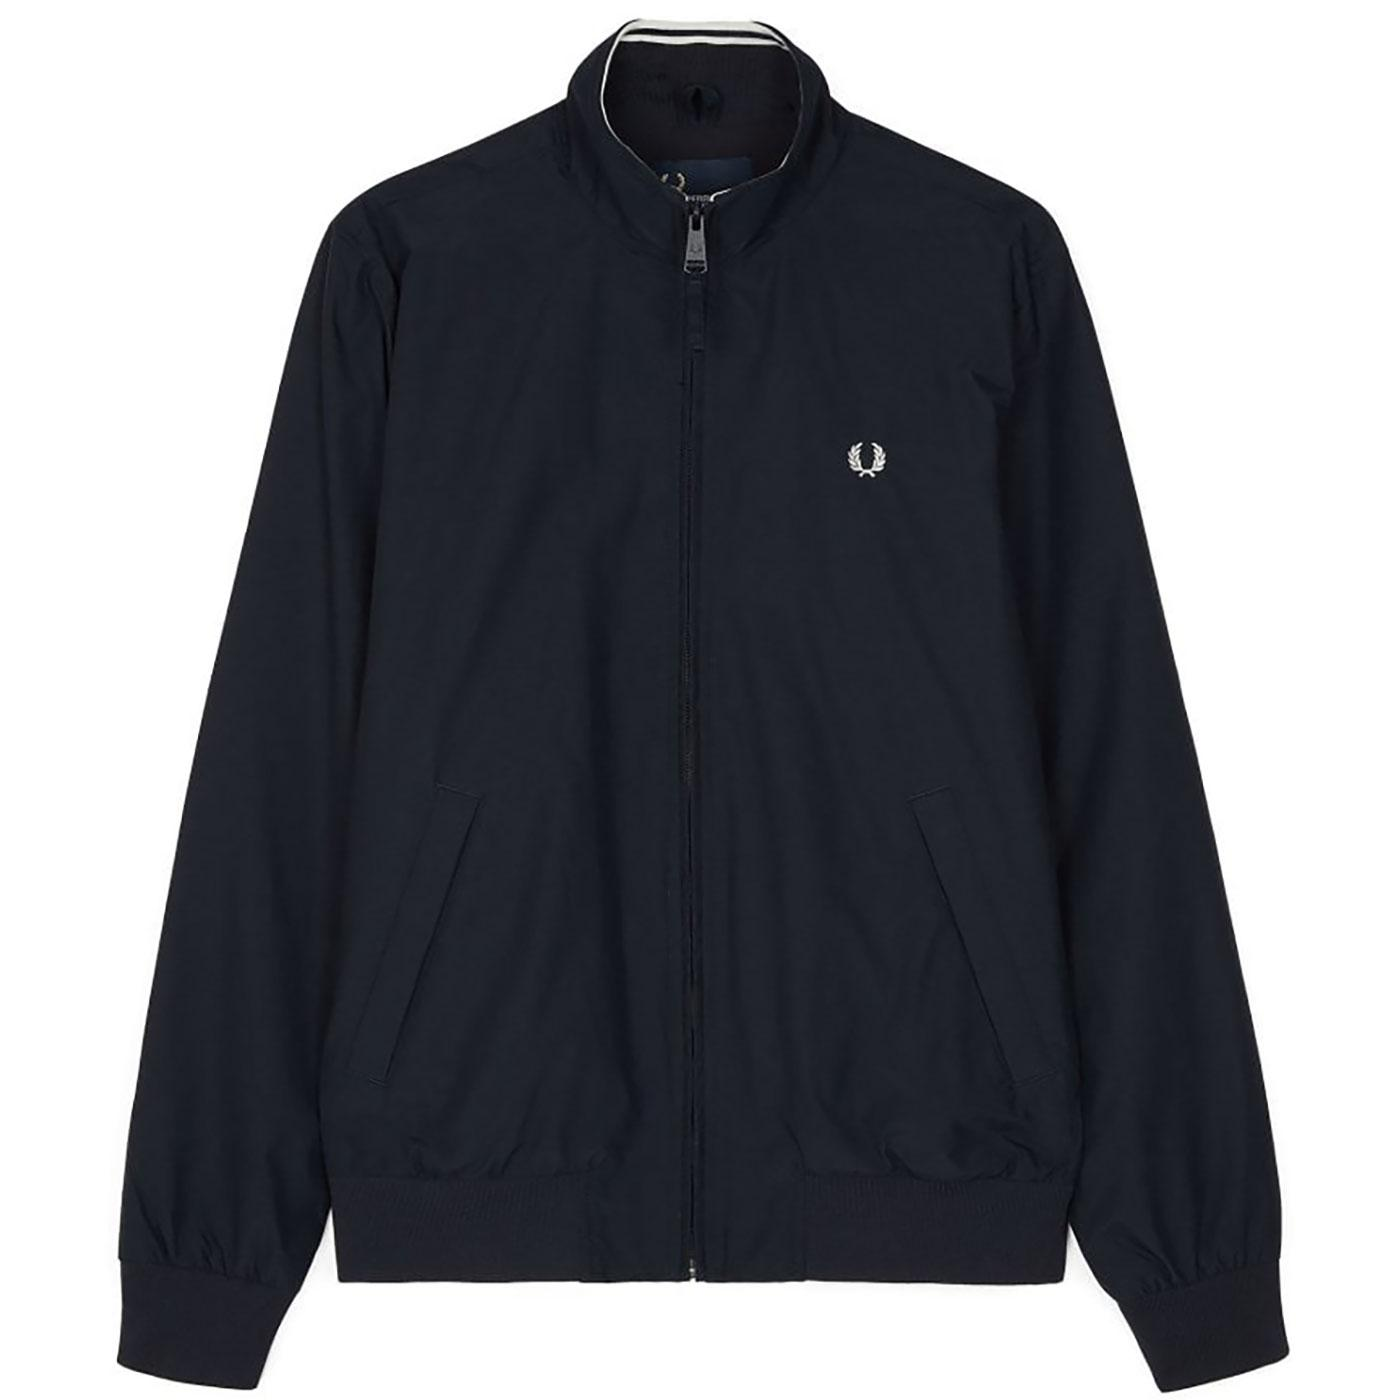 Brentham FRED PERRY Tipped Windbreaker Jacket N